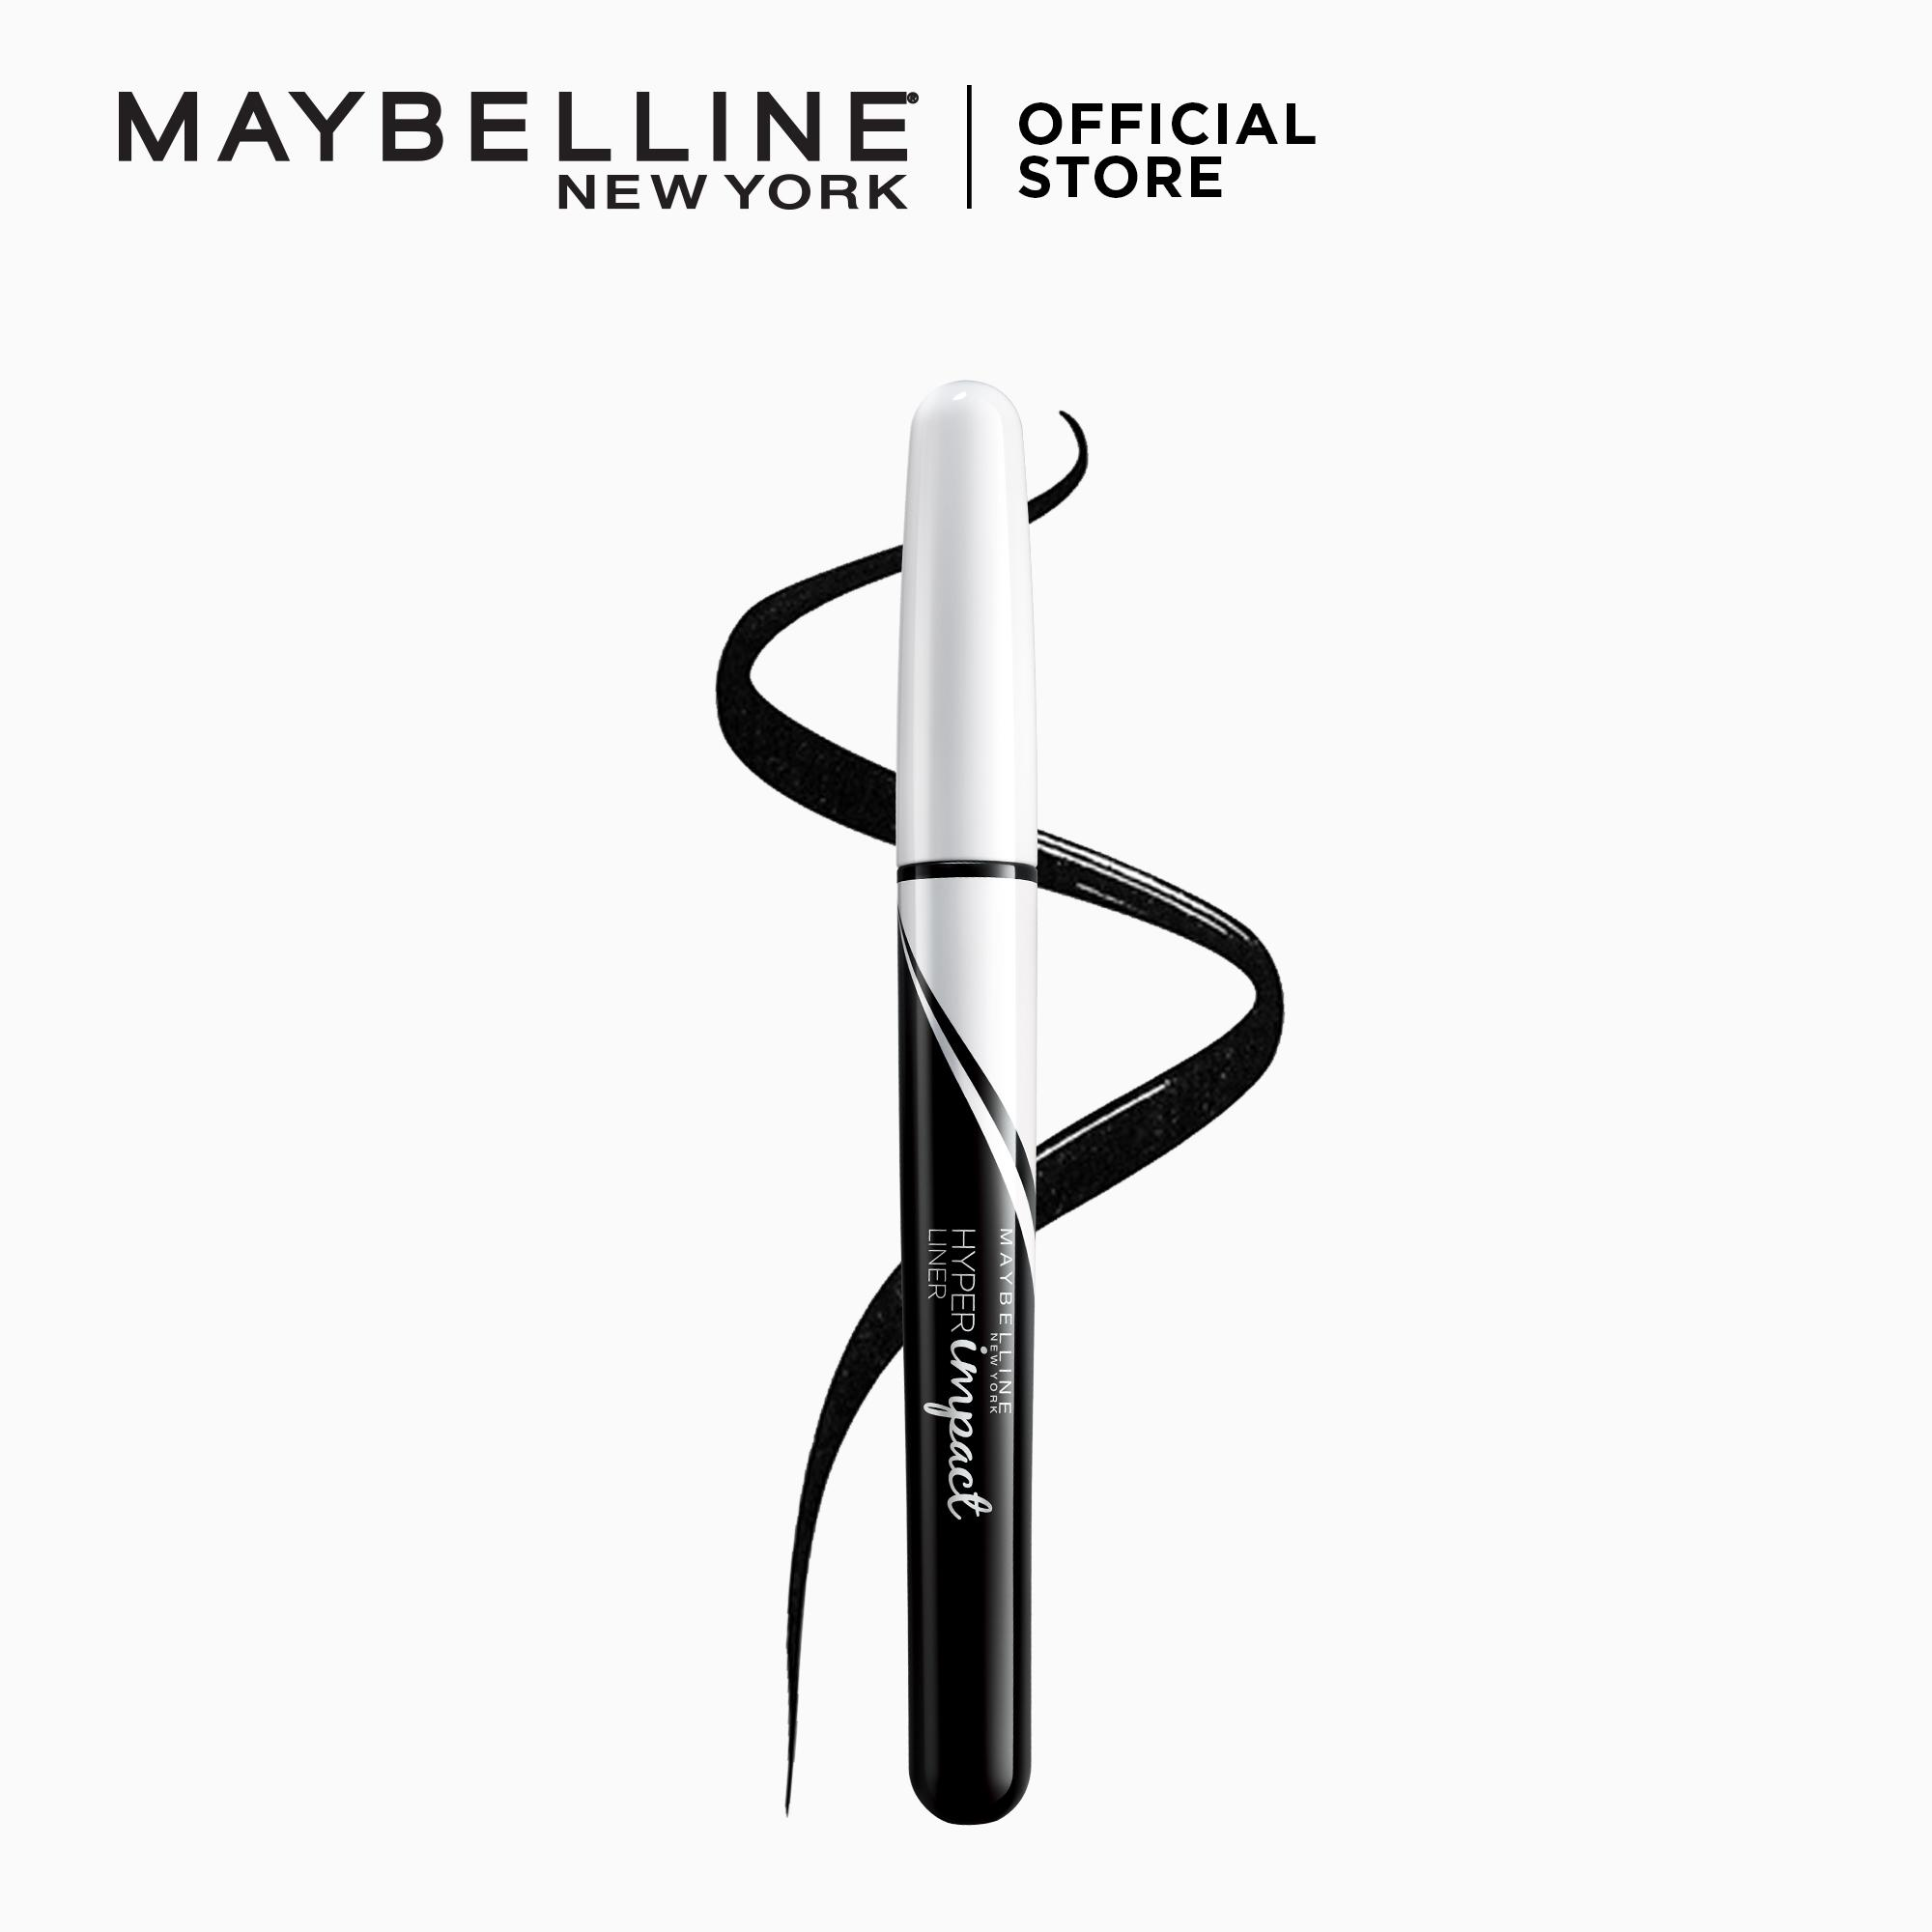 Maybelline Hyperimpact Liner (Black) Philippines